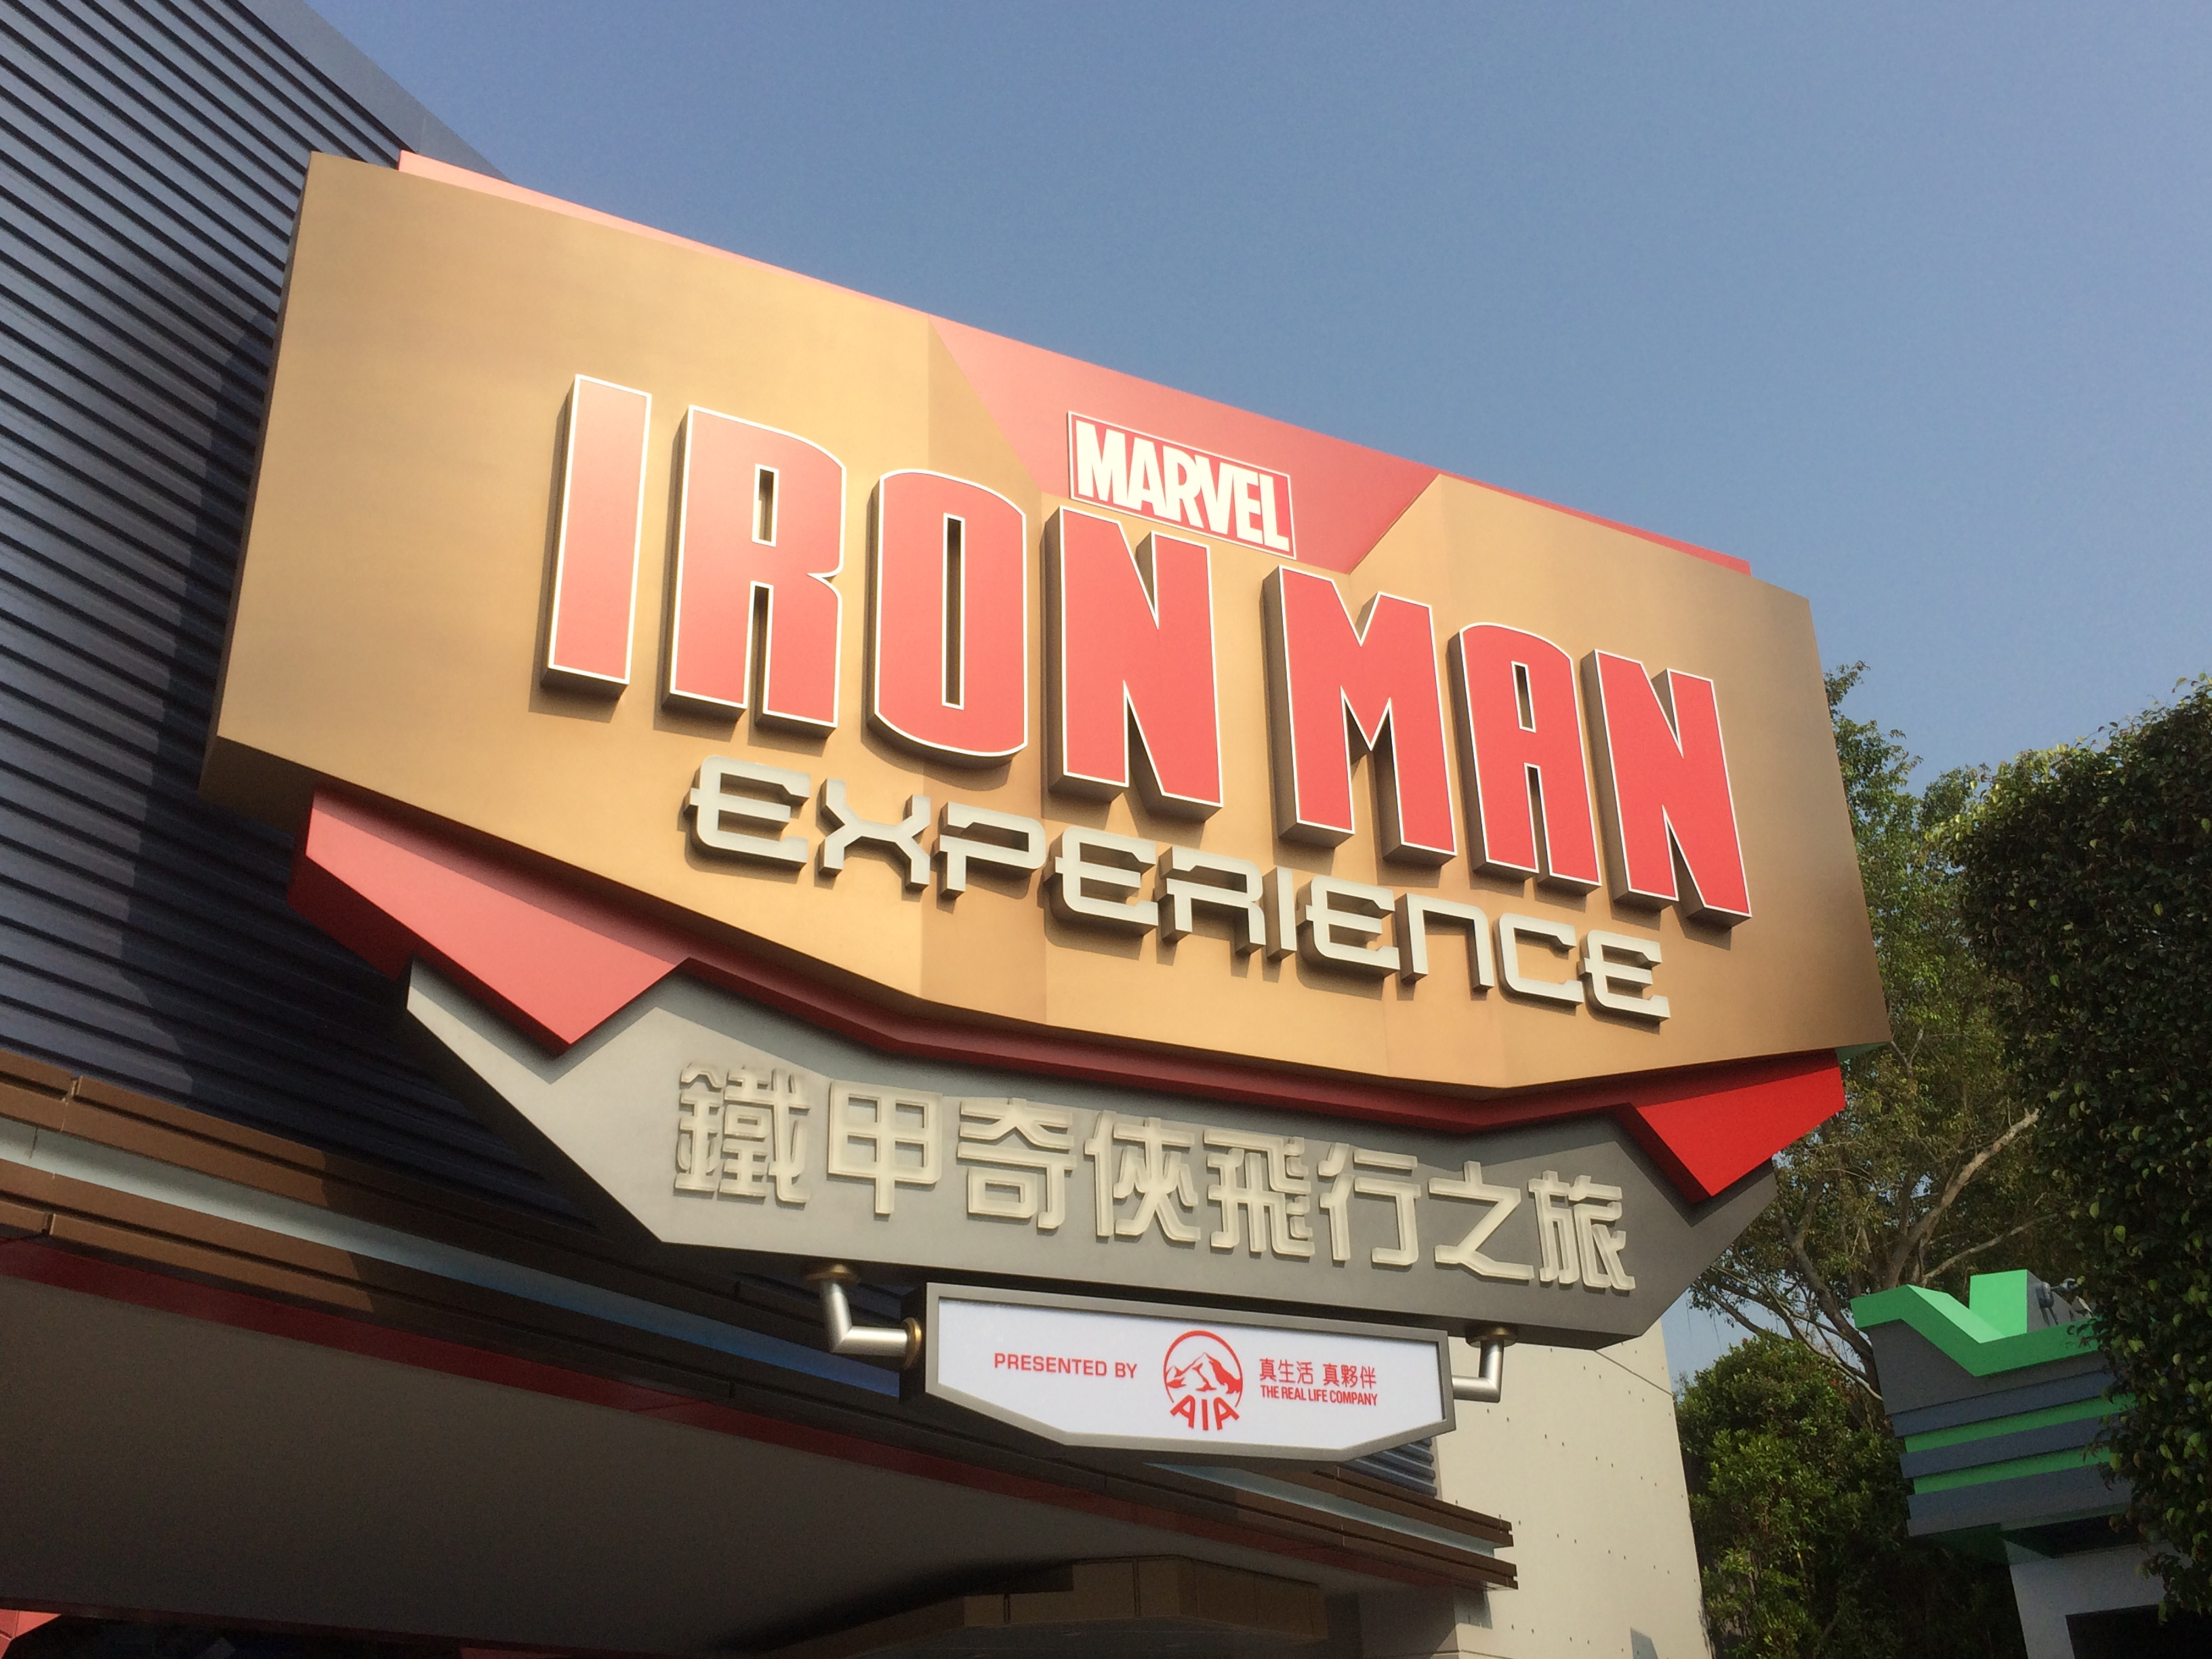 Iron Man Experience in Hong Kong Marks Disney's First Major Marvel Attraction